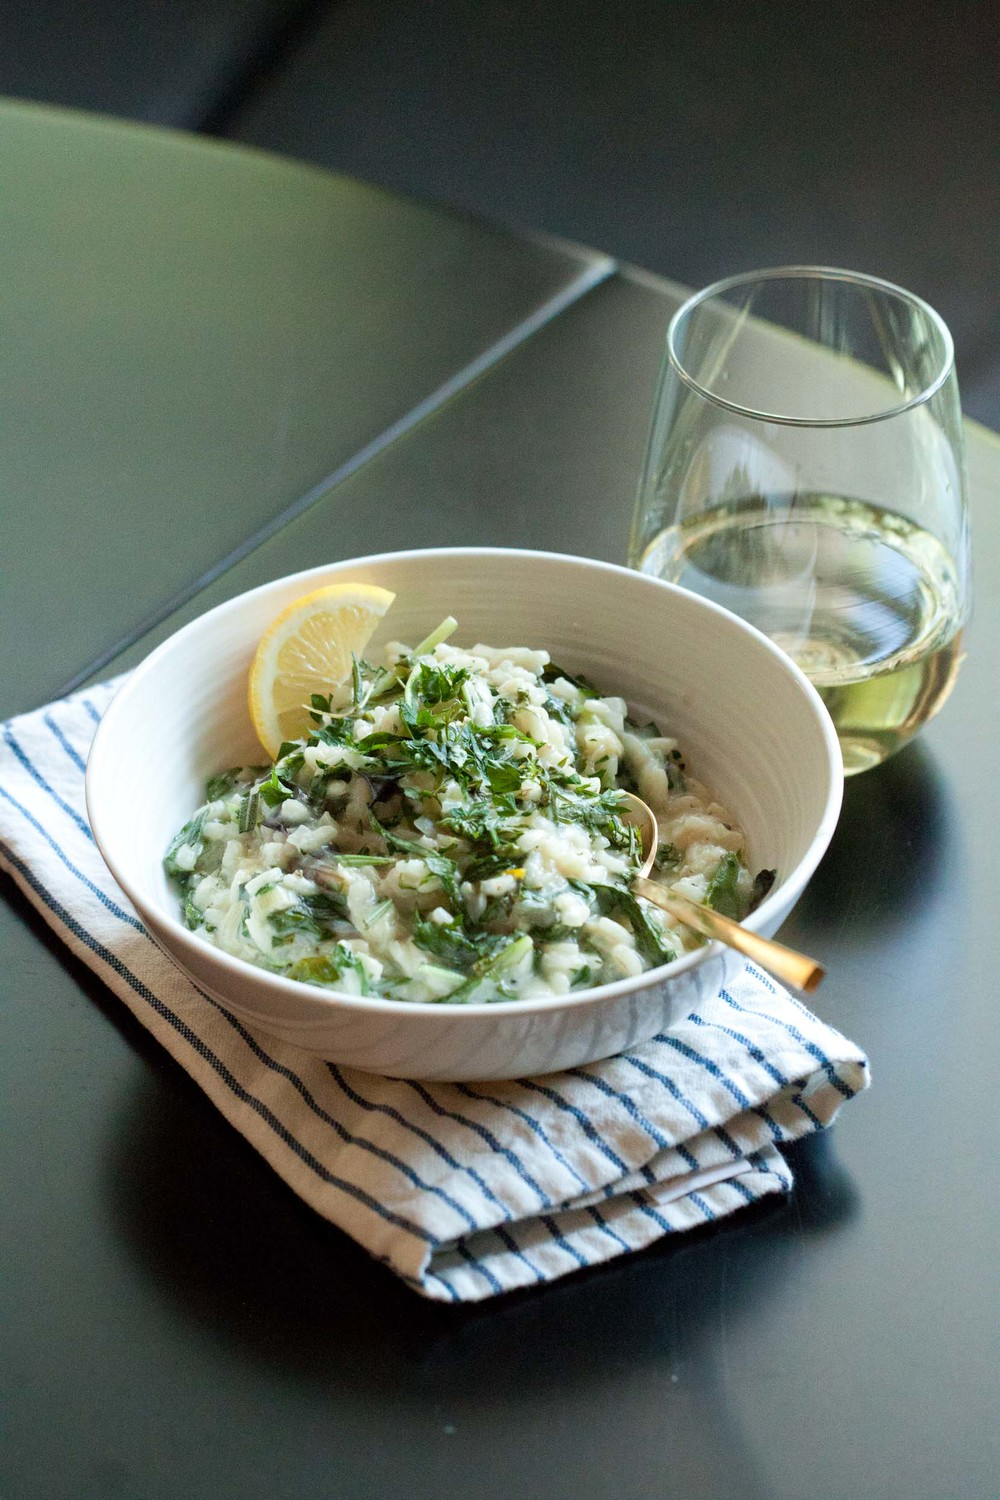 spring risotto with herbs revised-10.jpg